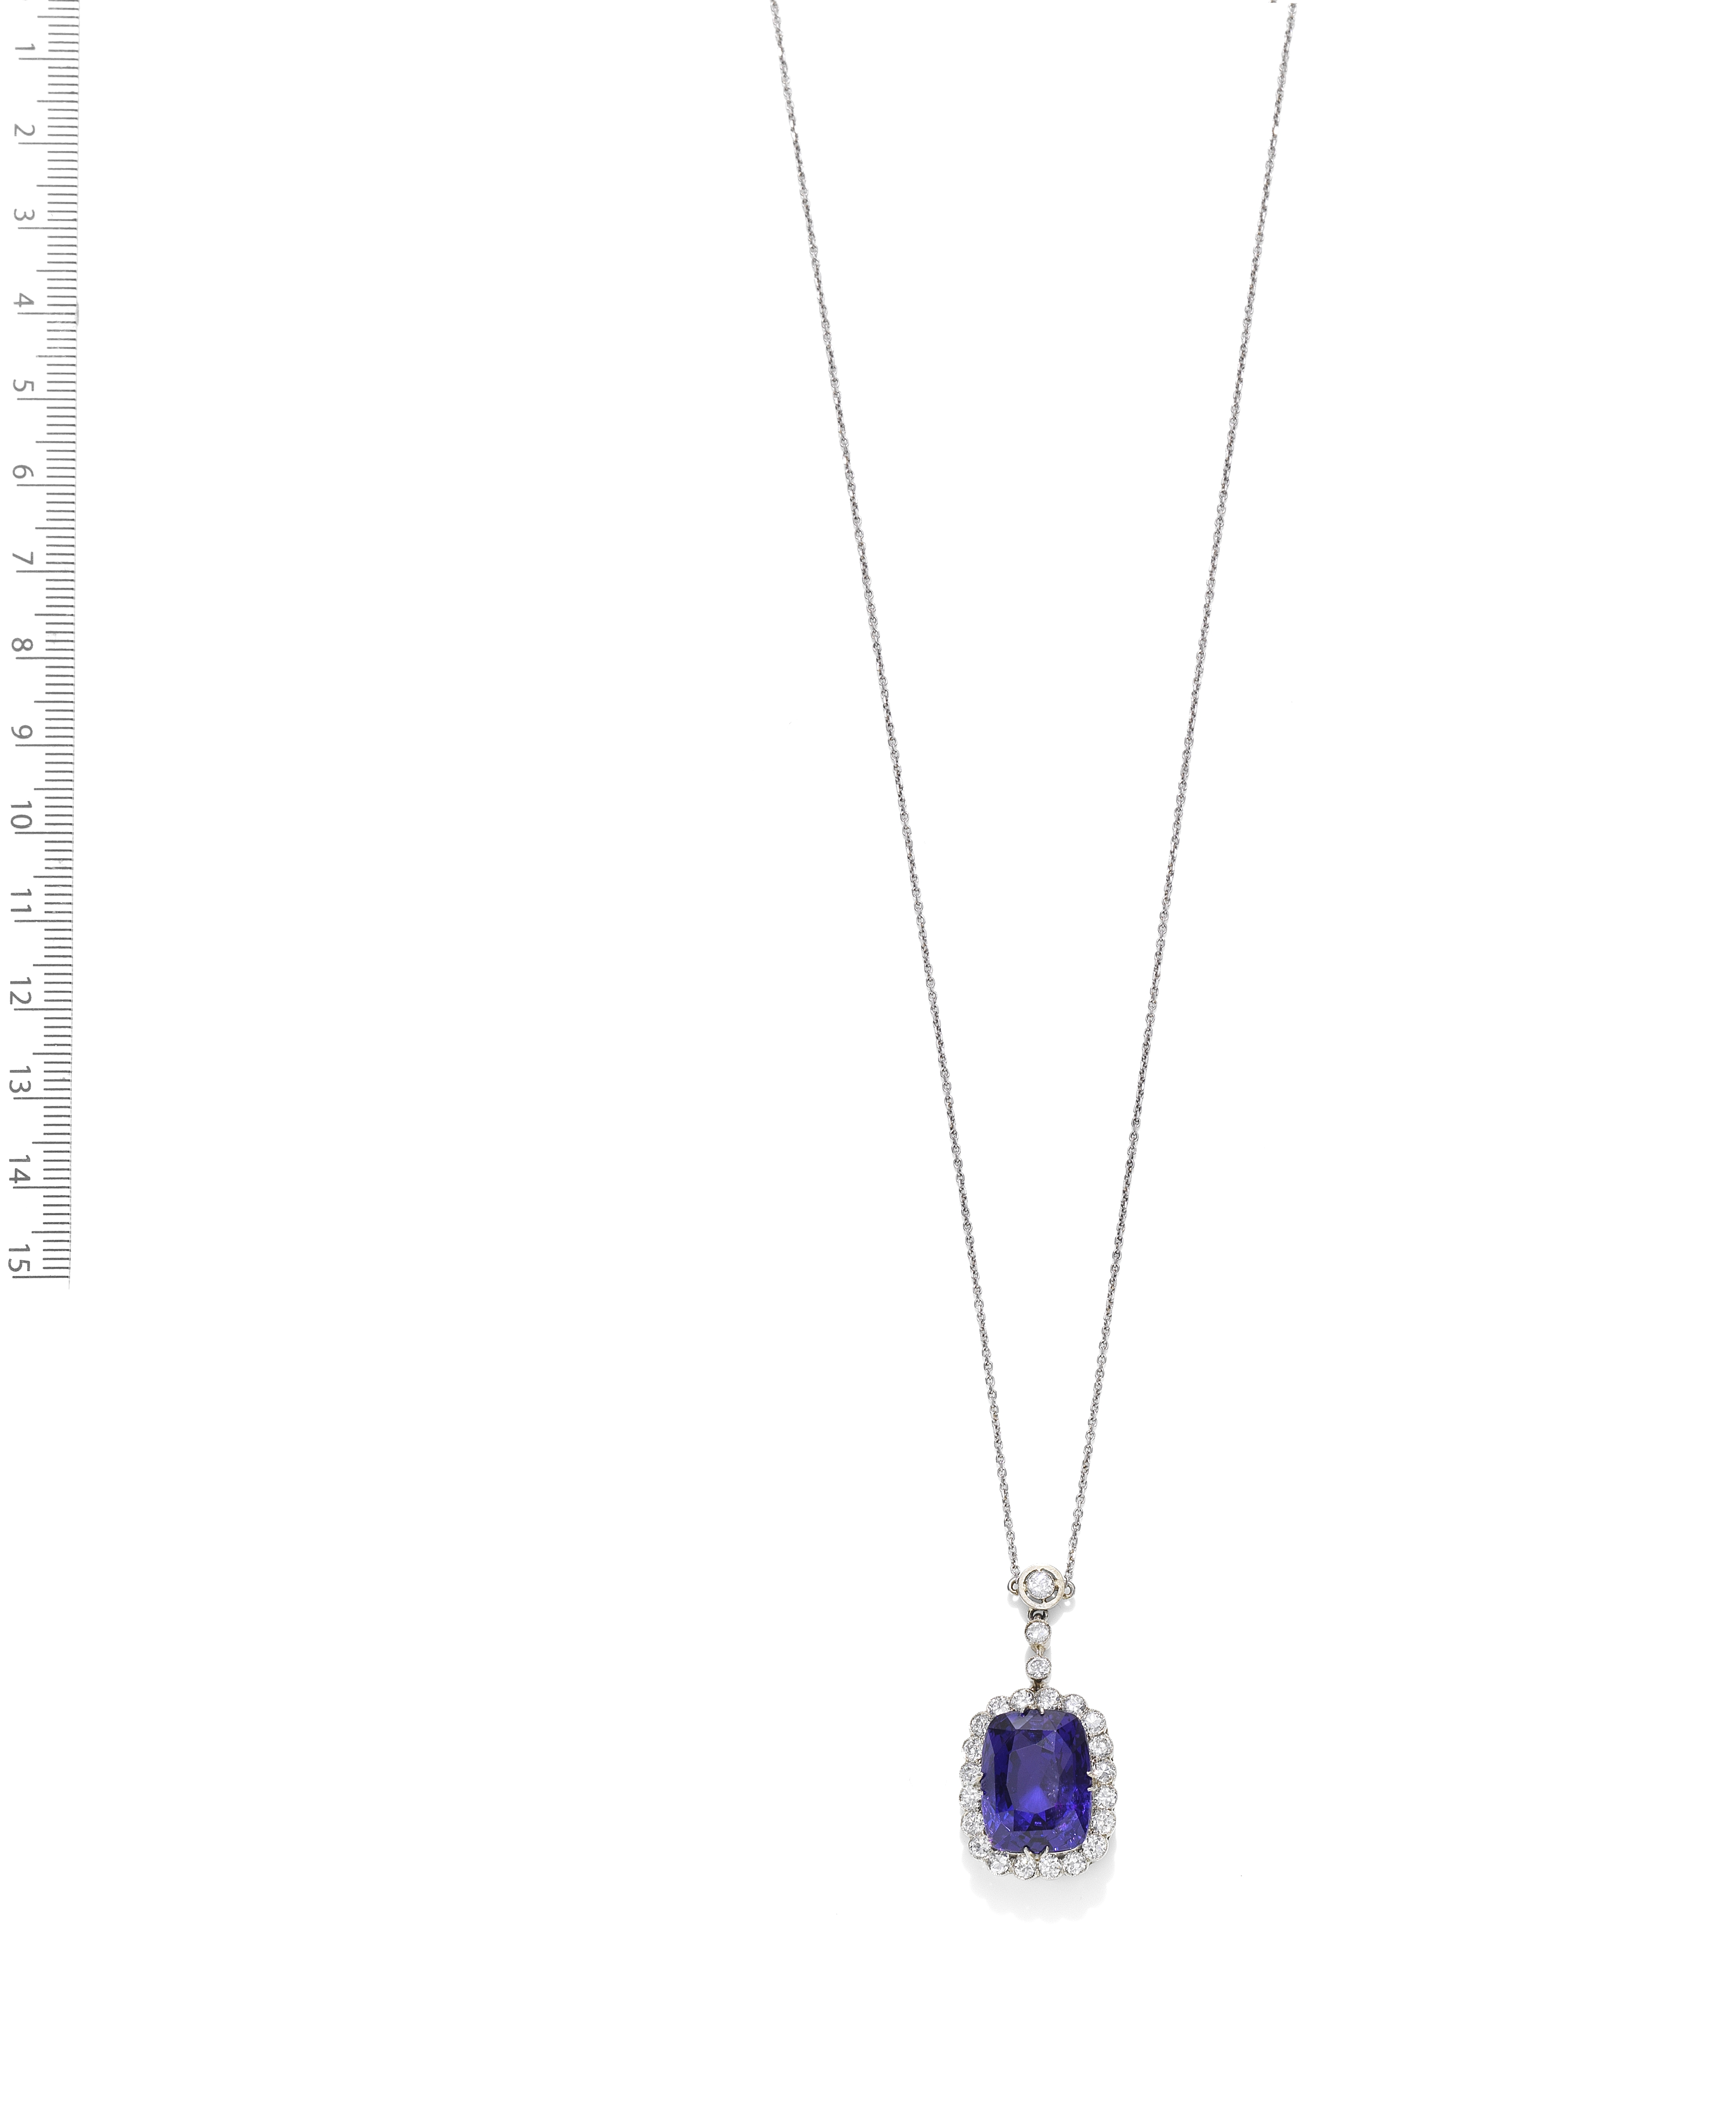 COLOUR CHANGE SAPPHIRE AND DIAMOND PENDANT, FIRST HALF OF THE 20TH CENTURY